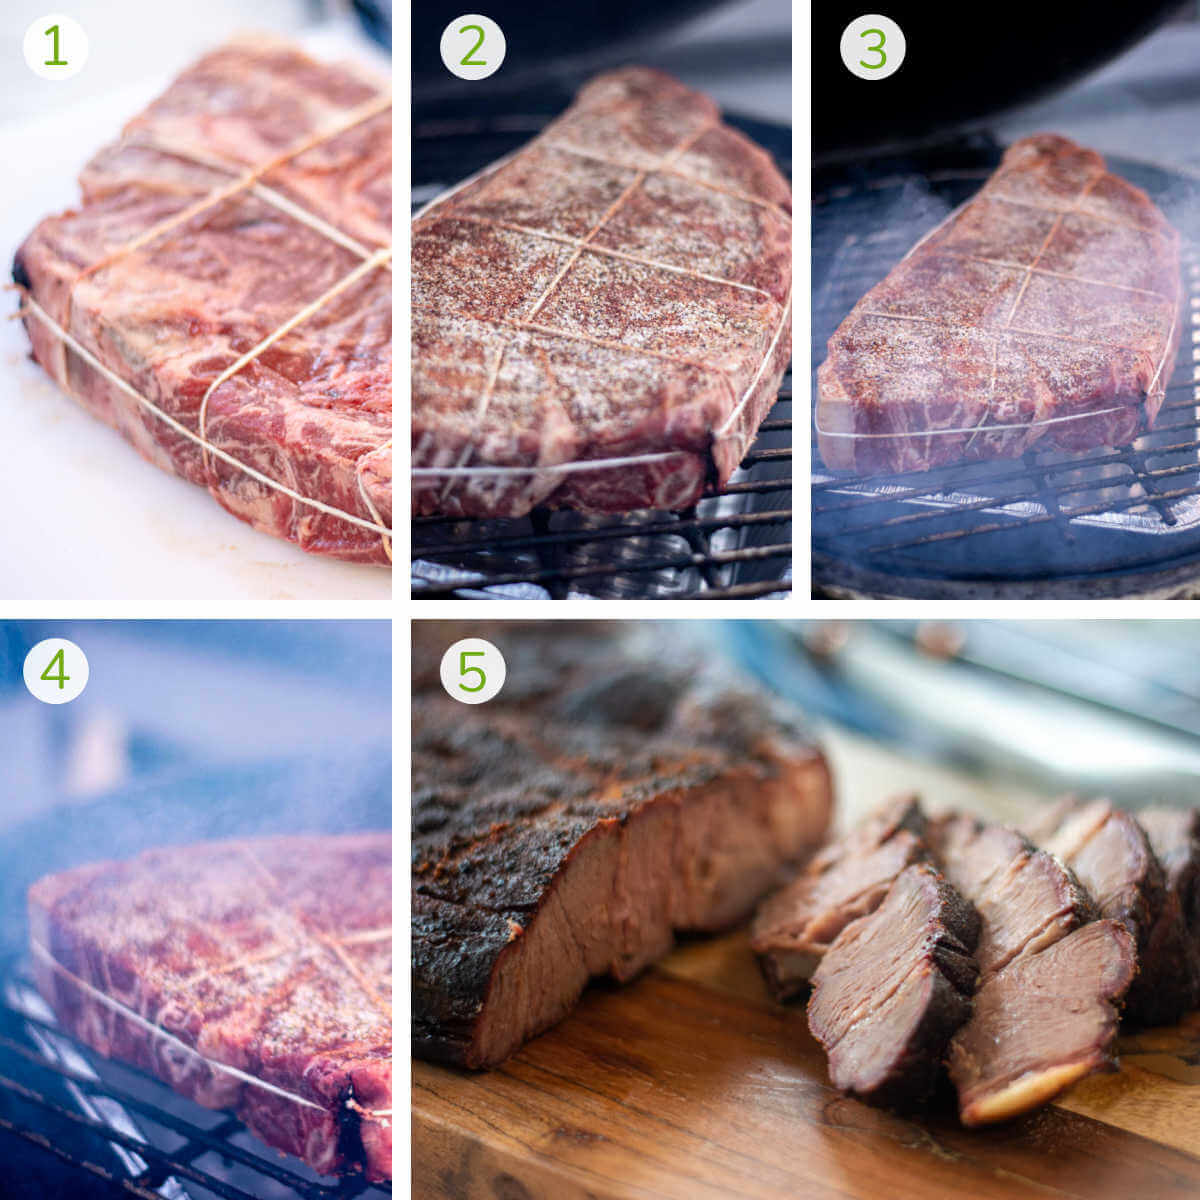 instruction photos showing how to wrap the chuck roast in twine, season and smoke it and then sliced.